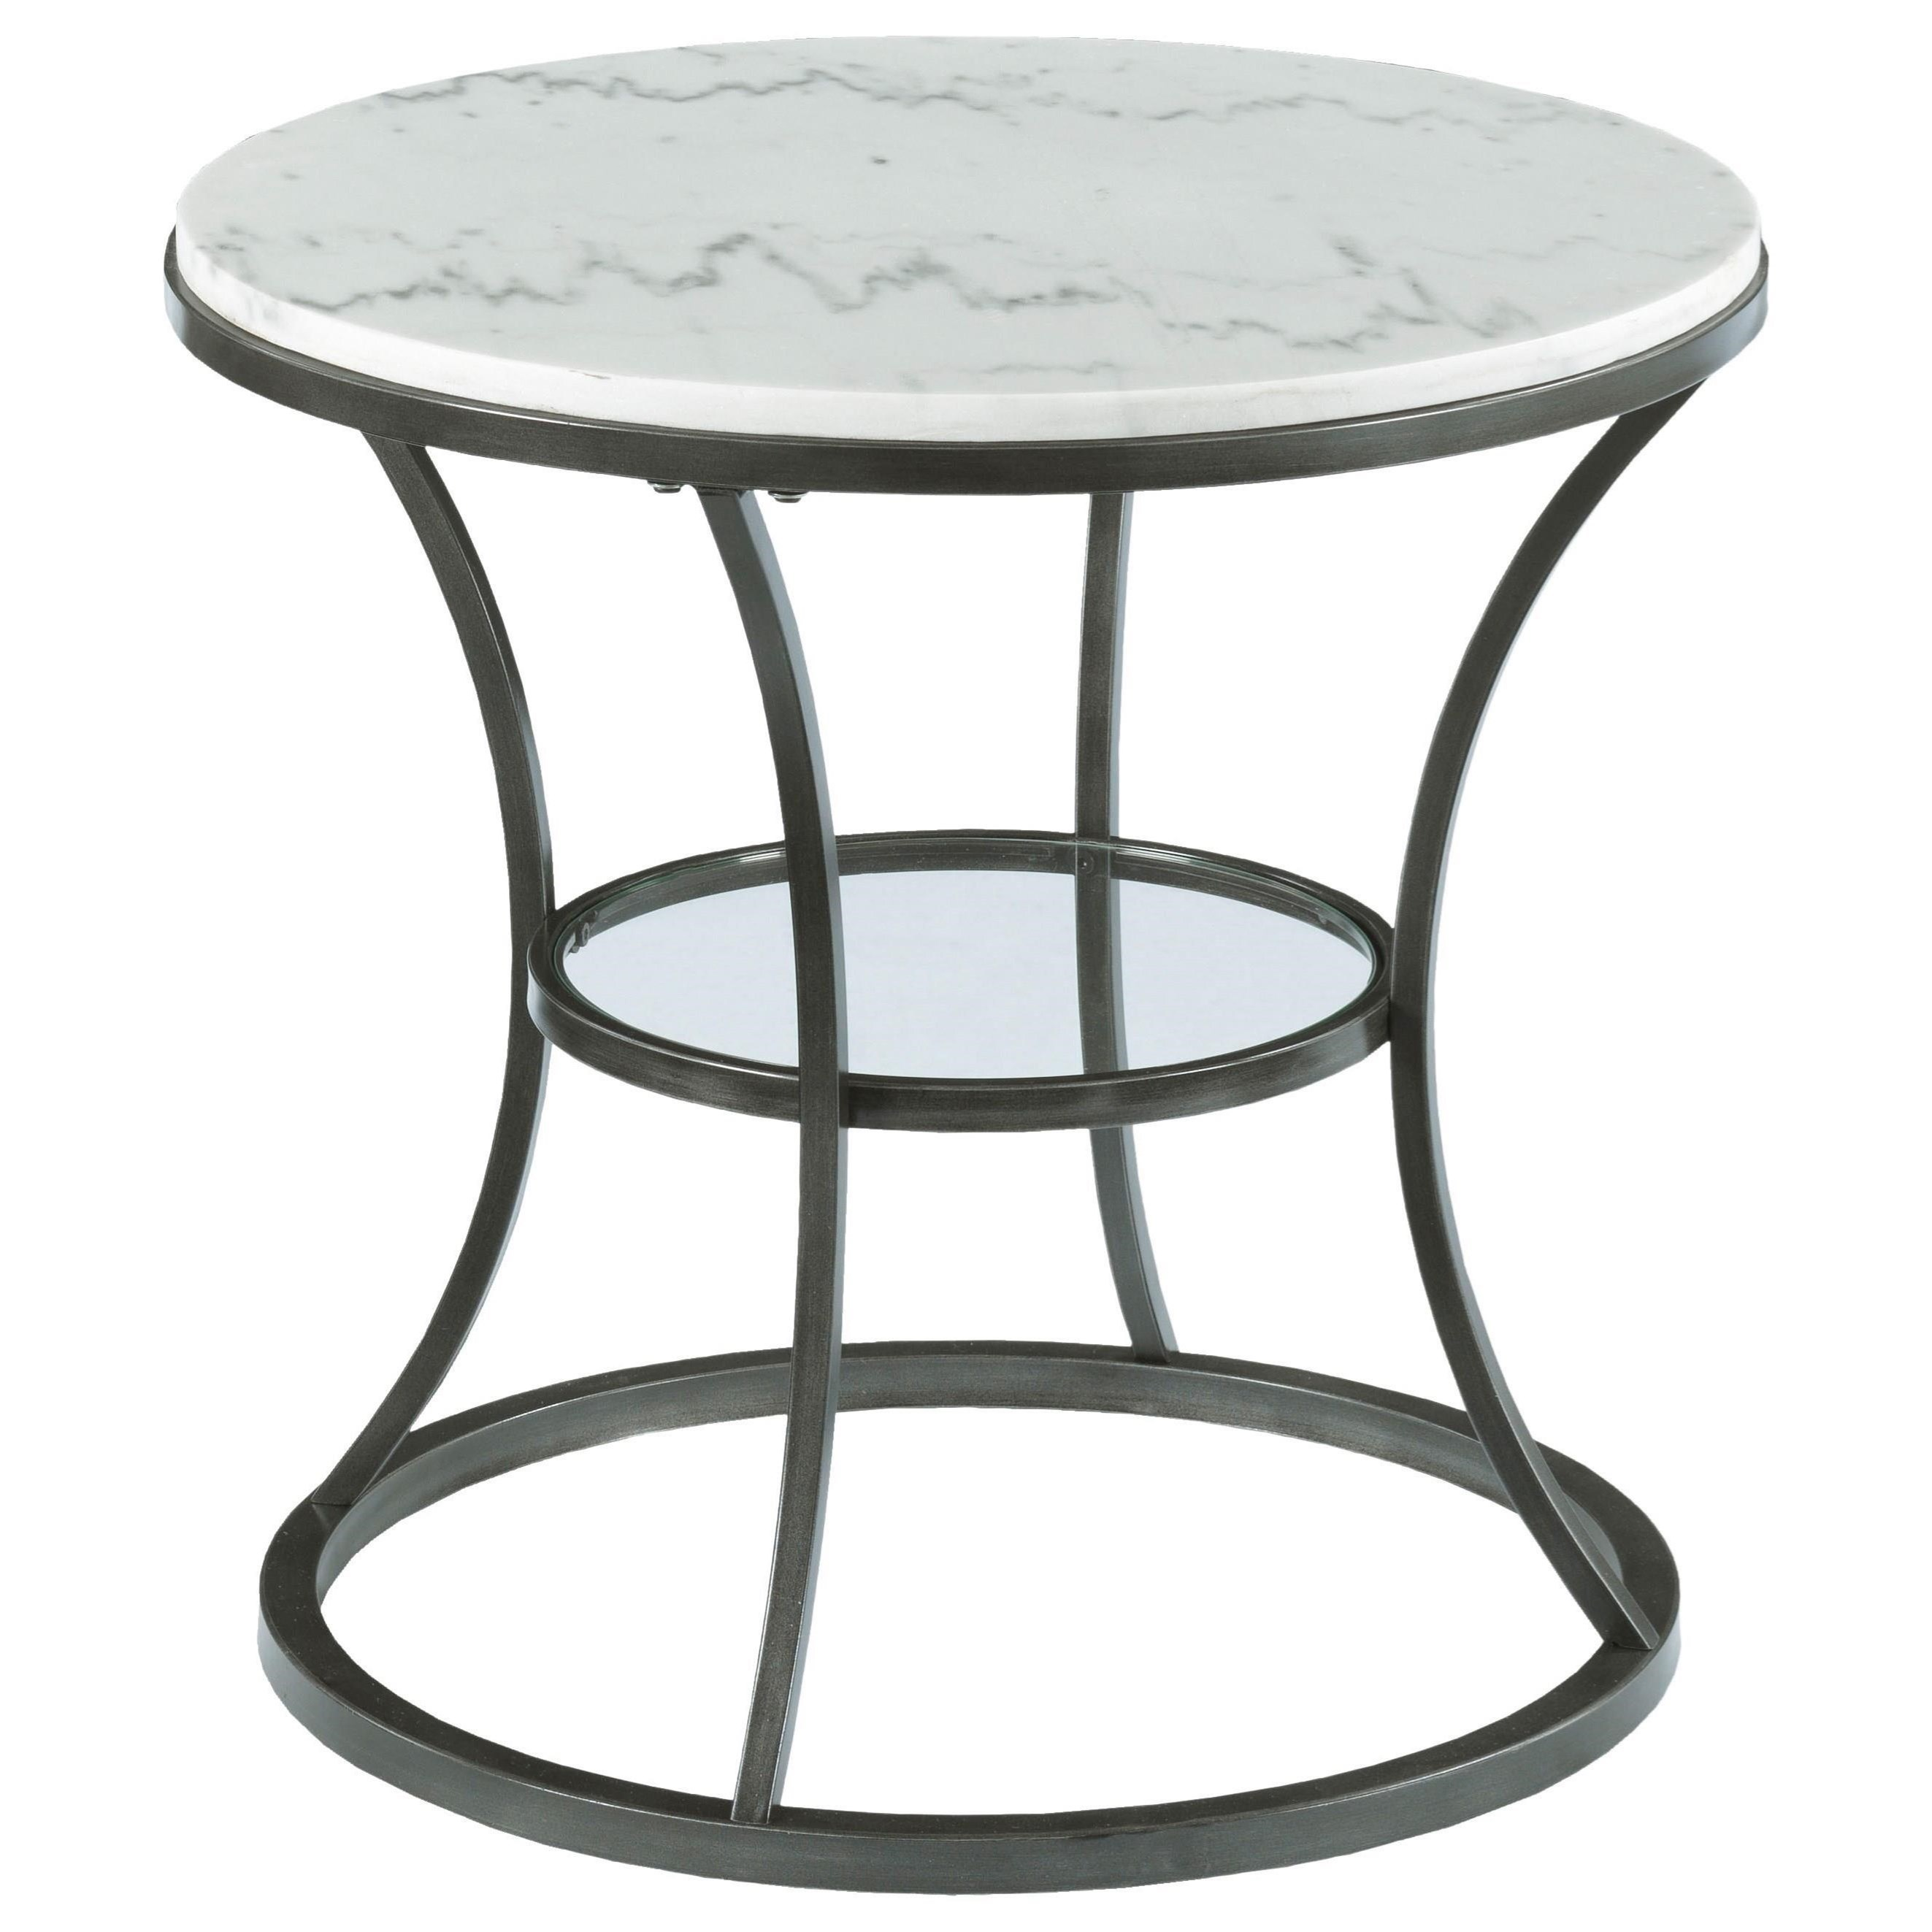 marble top end tables house design french accent table hammary impact round with and glass nate berkus gold antique oval decorative storage cabinet doors diy small patio